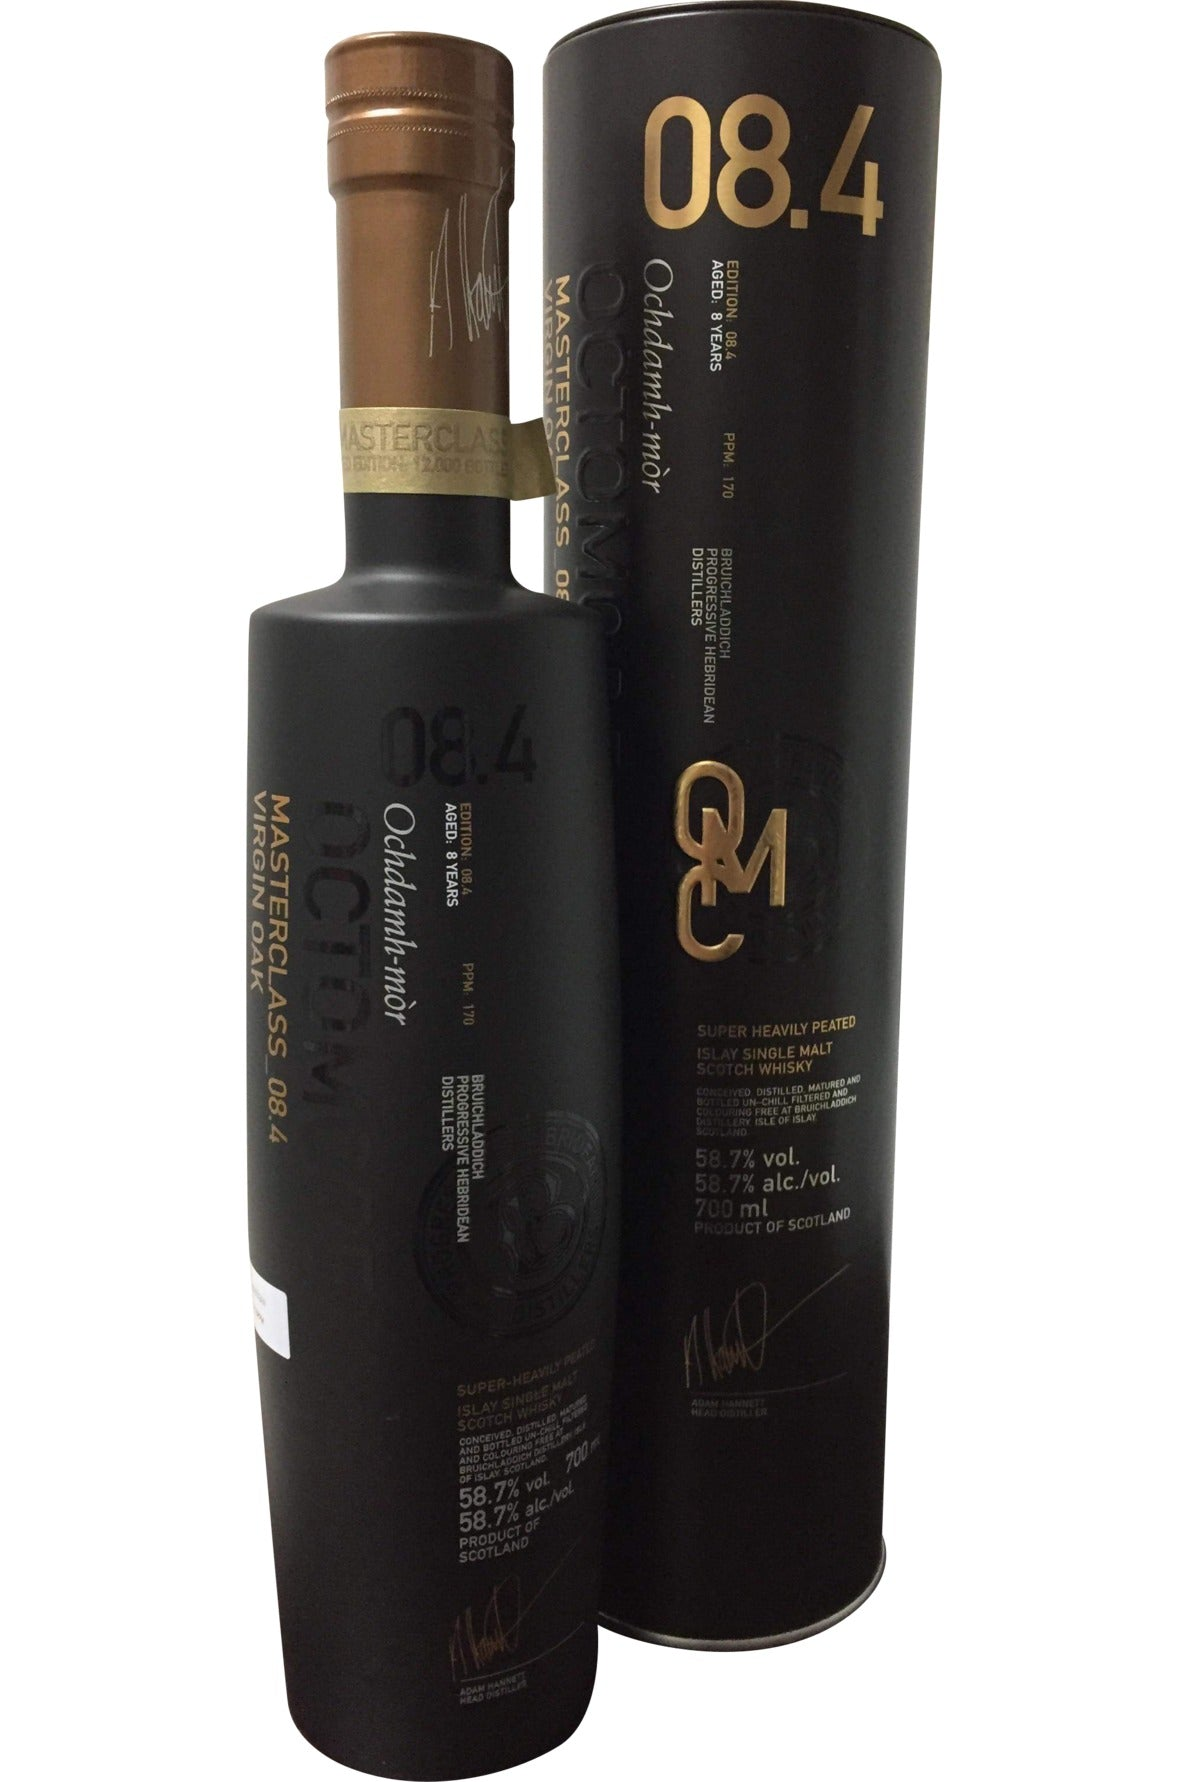 Bruichladdich Octomore Masterclass_08.4 Virgin Oak - 58.7% 700ml